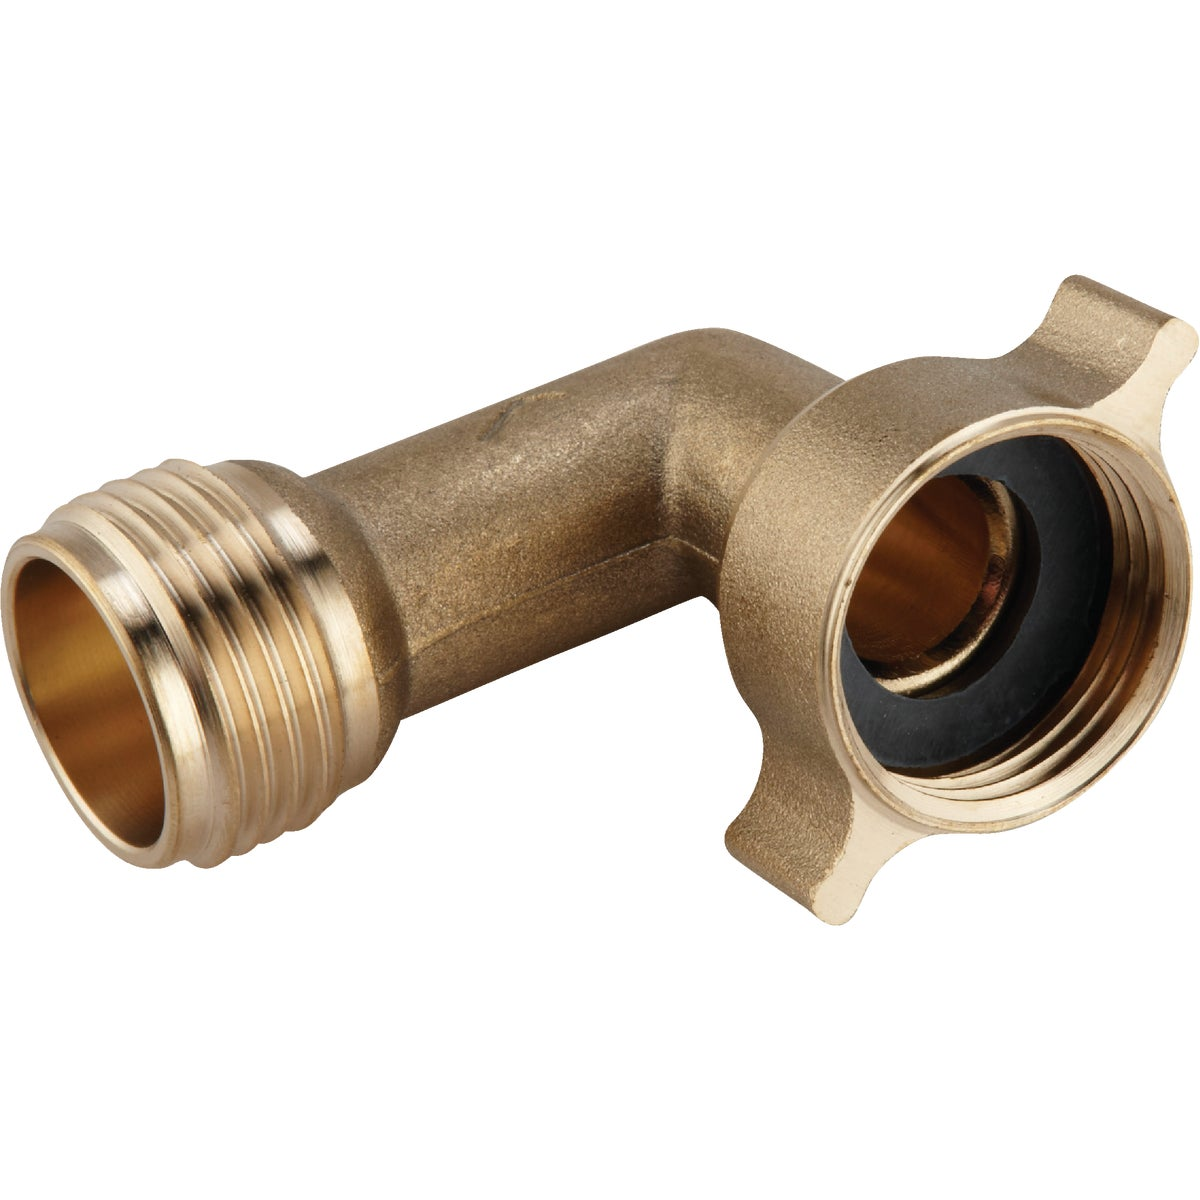 90 DEG WATER HOSE ELBOW - 22505 by Camco Mfg.